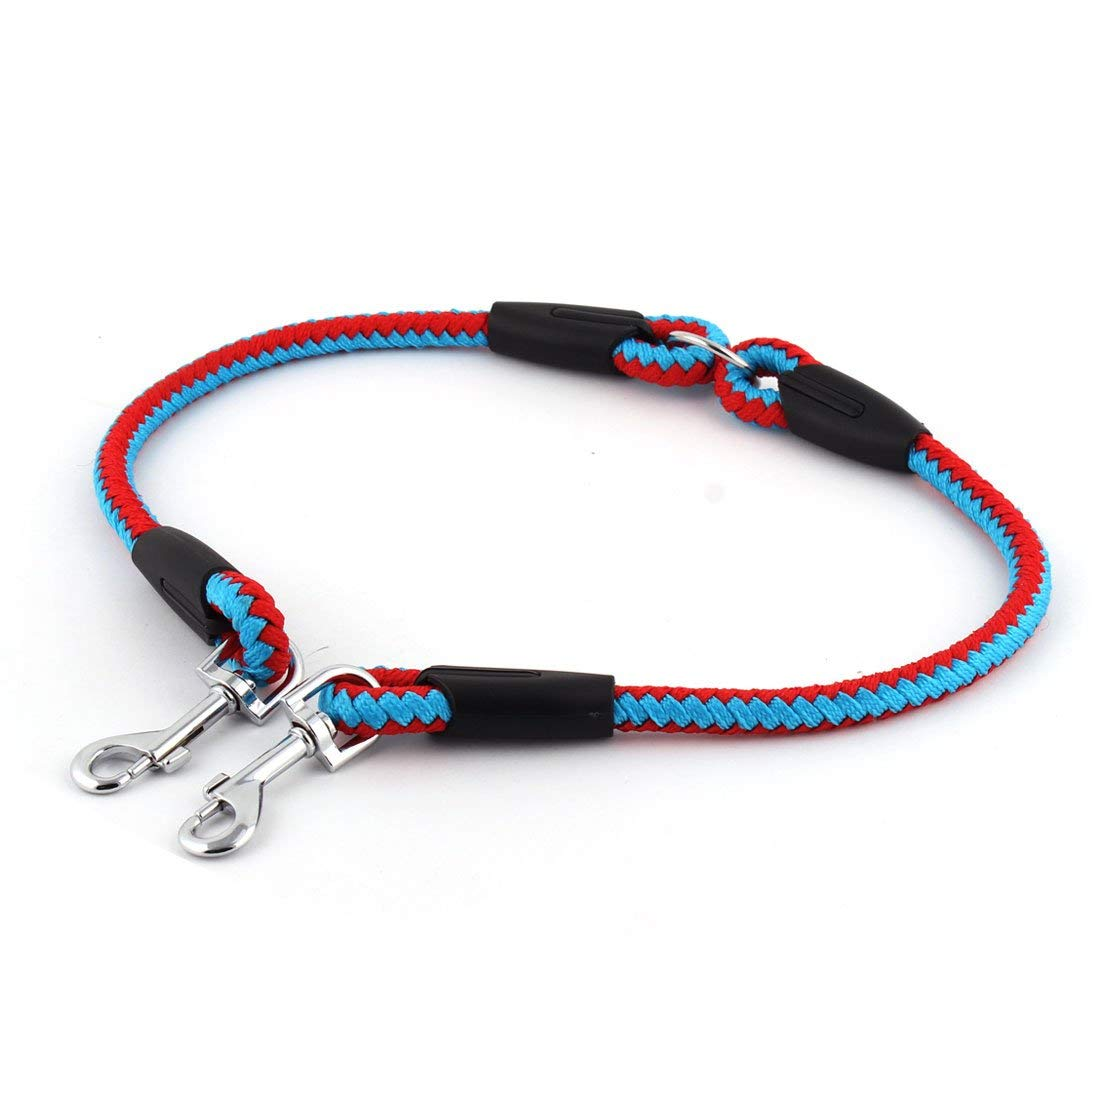 1Pc bluee, M   Pets Dog Cat Running Accessories Dogs Nylon Leash Padded Waist with Elastic Leash Between 160cm and 260cm